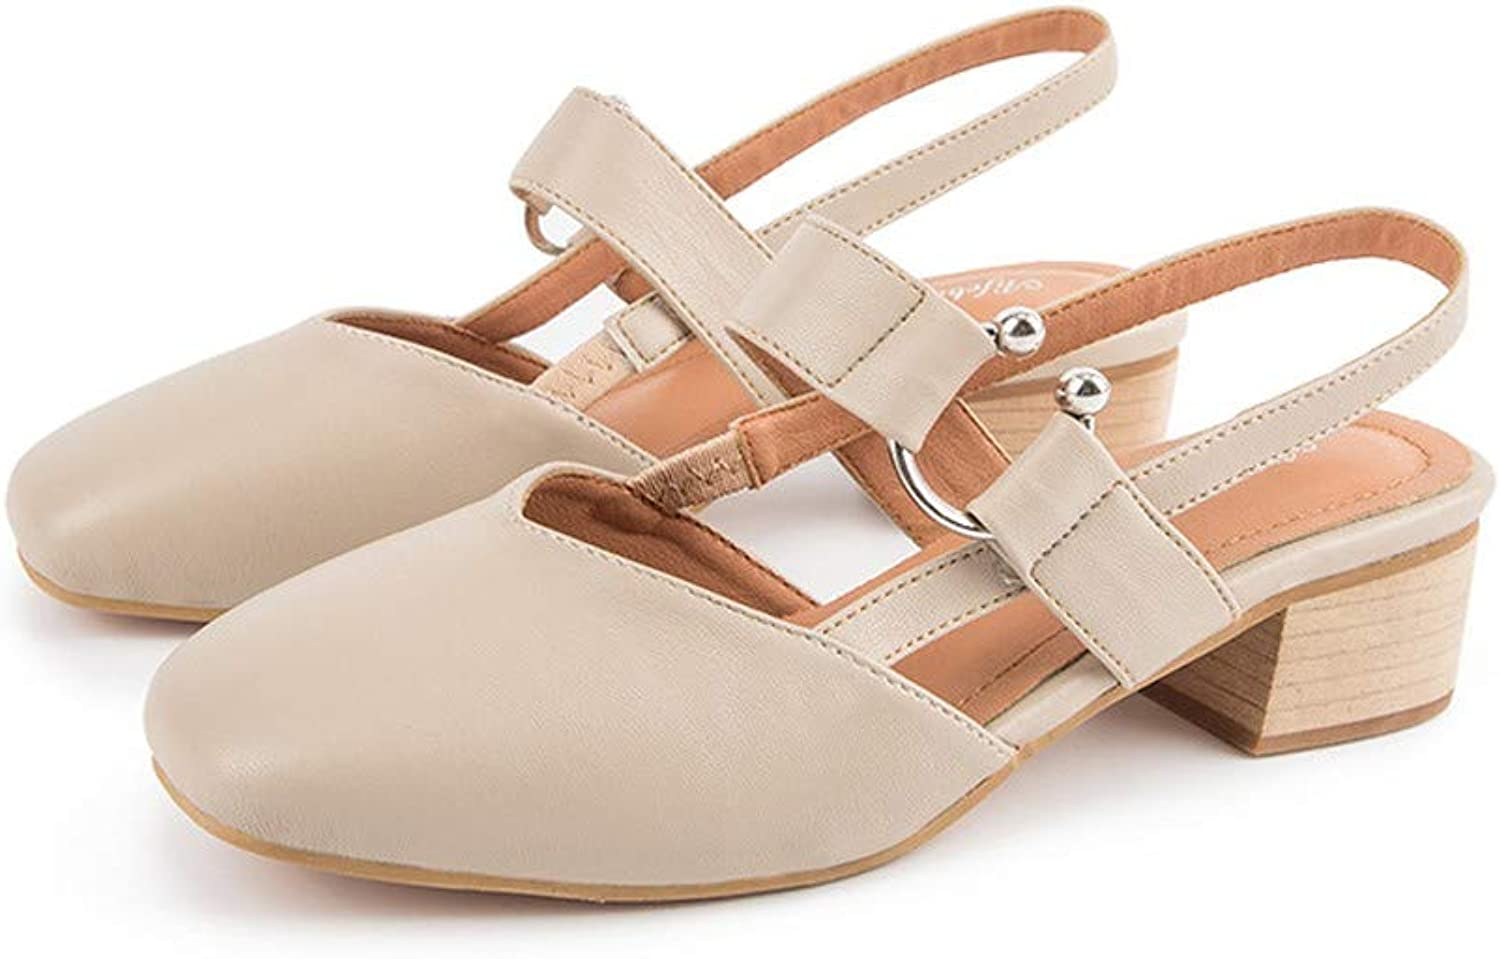 NURJOR Baotou with Sandals with a Buckle with Pointed Thick Heel shoes